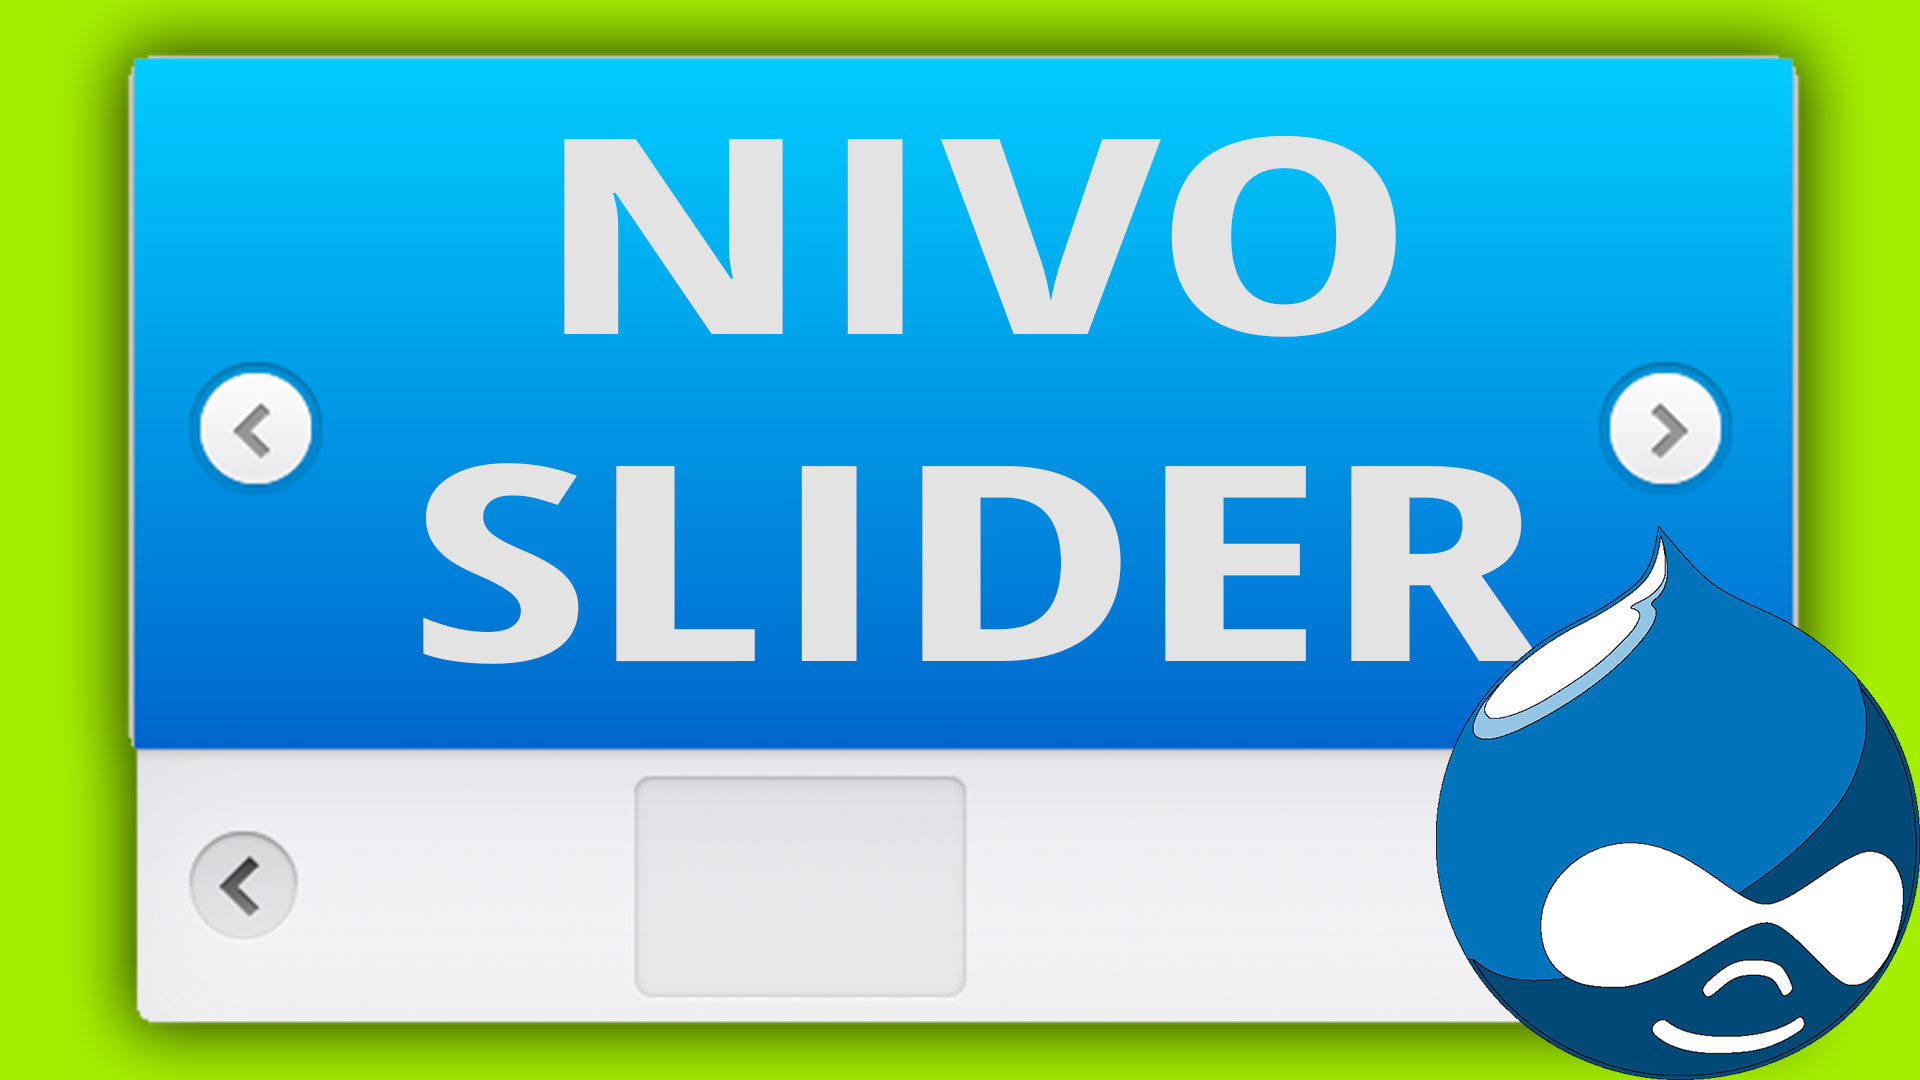 nivo slider drupal 7 tutorial